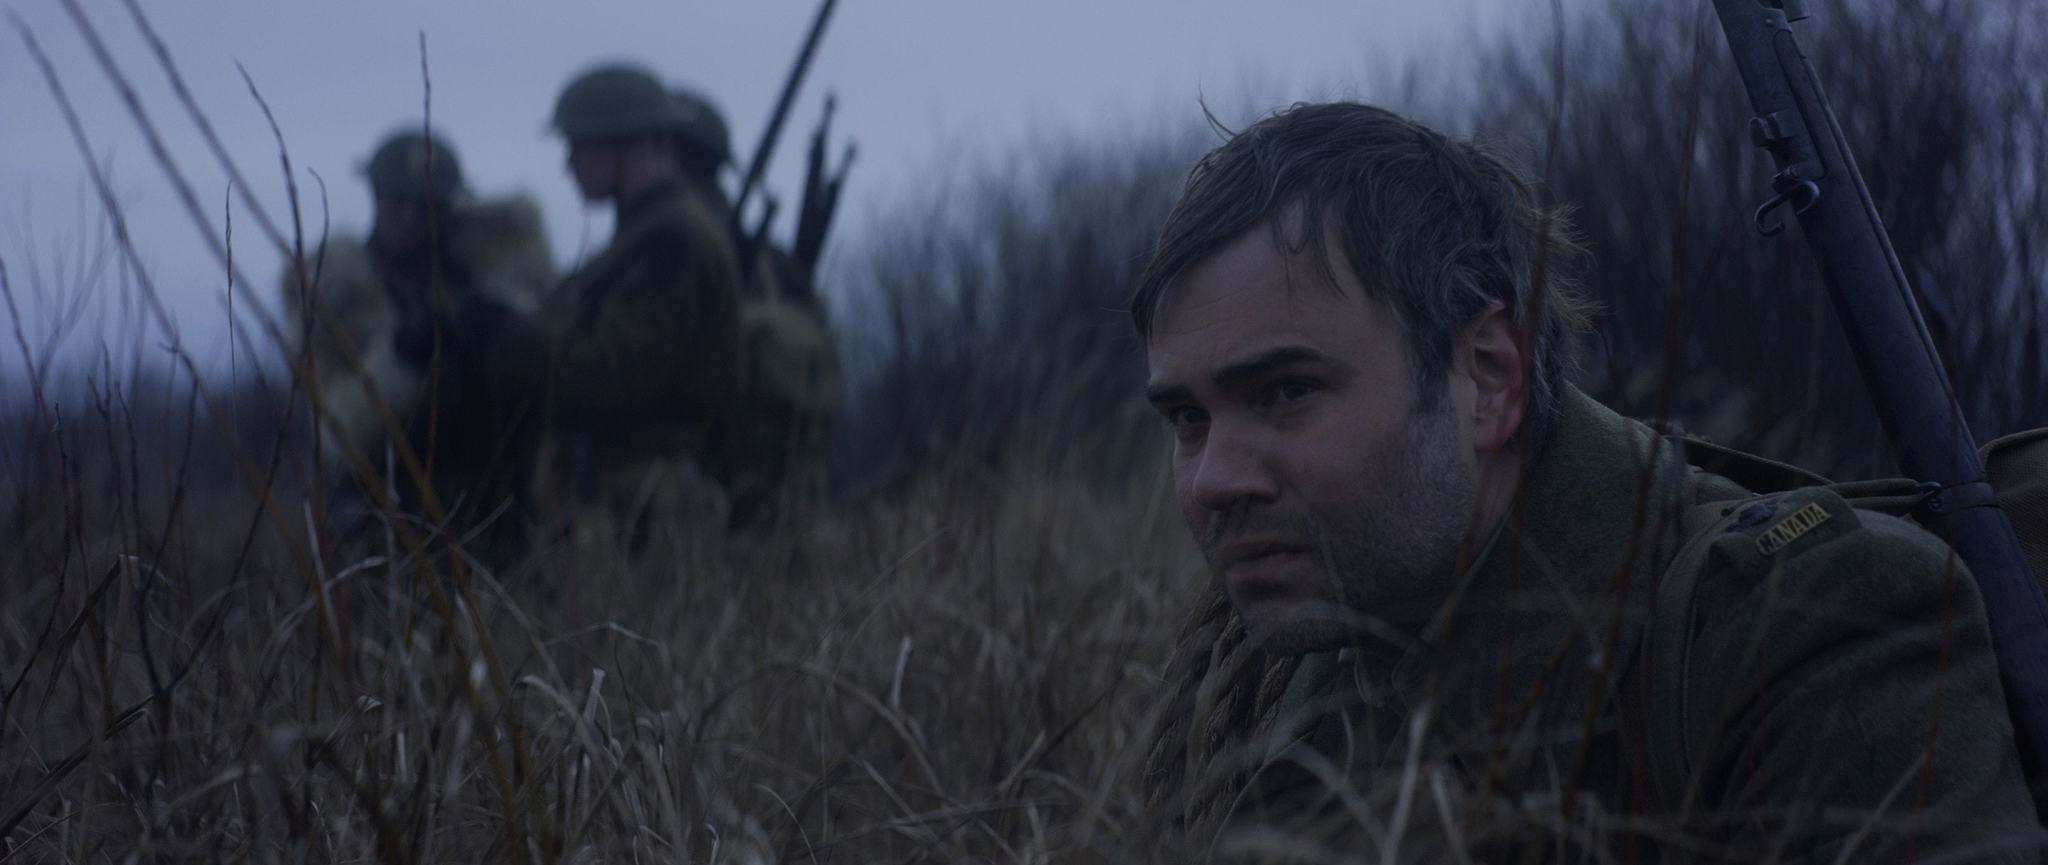 Photos by Raven Banner Films</p><p>In his role as Allied soldier Berton, Rossif Sutherland possesses a certain weary charisma that positions him as an unorthodox, but interesting protagonist in Trench 11.</p></p>